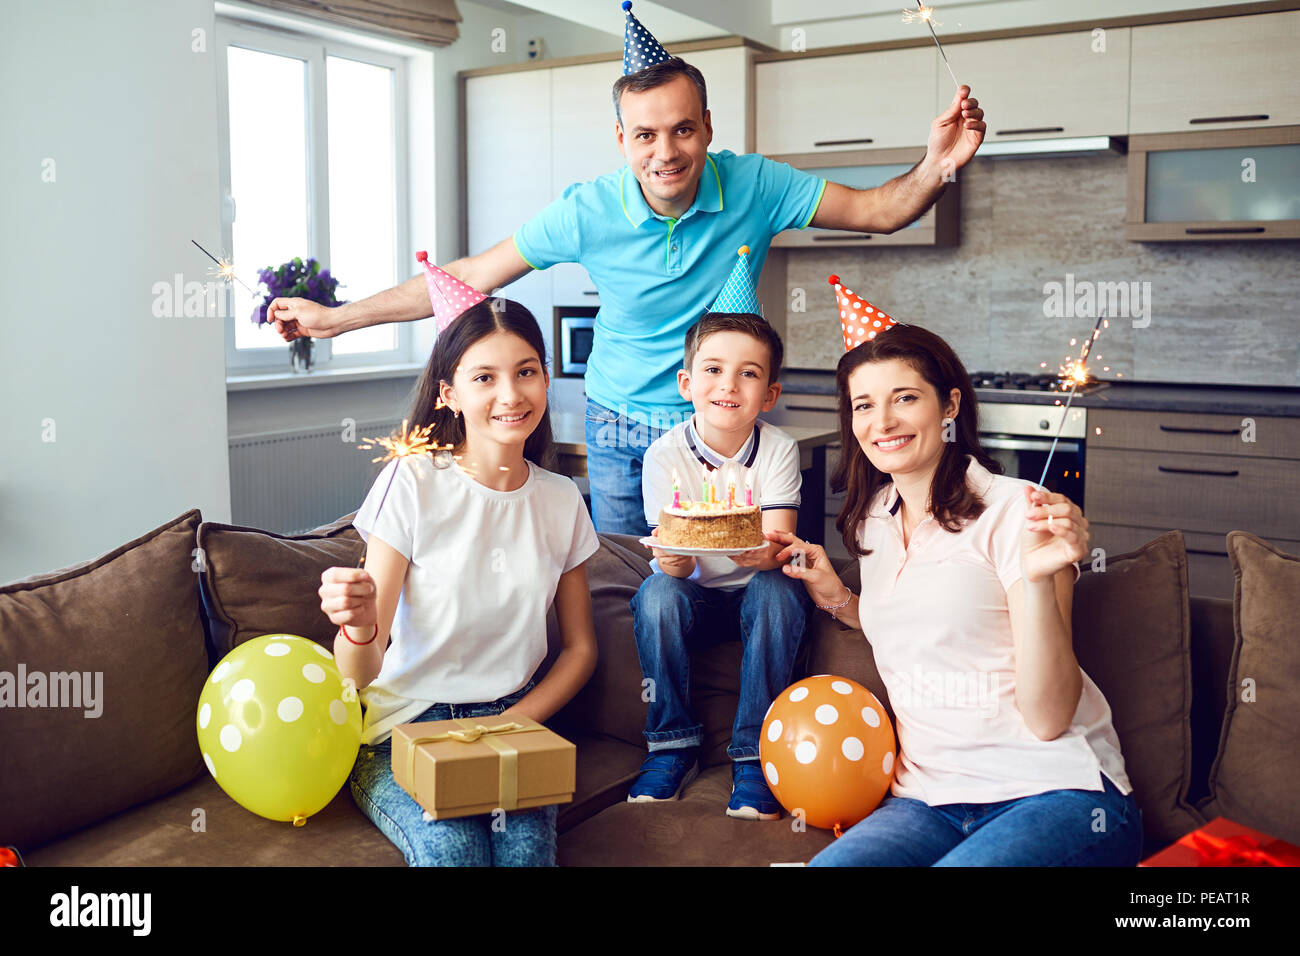 Happy family with cake on birthday party - Stock Image